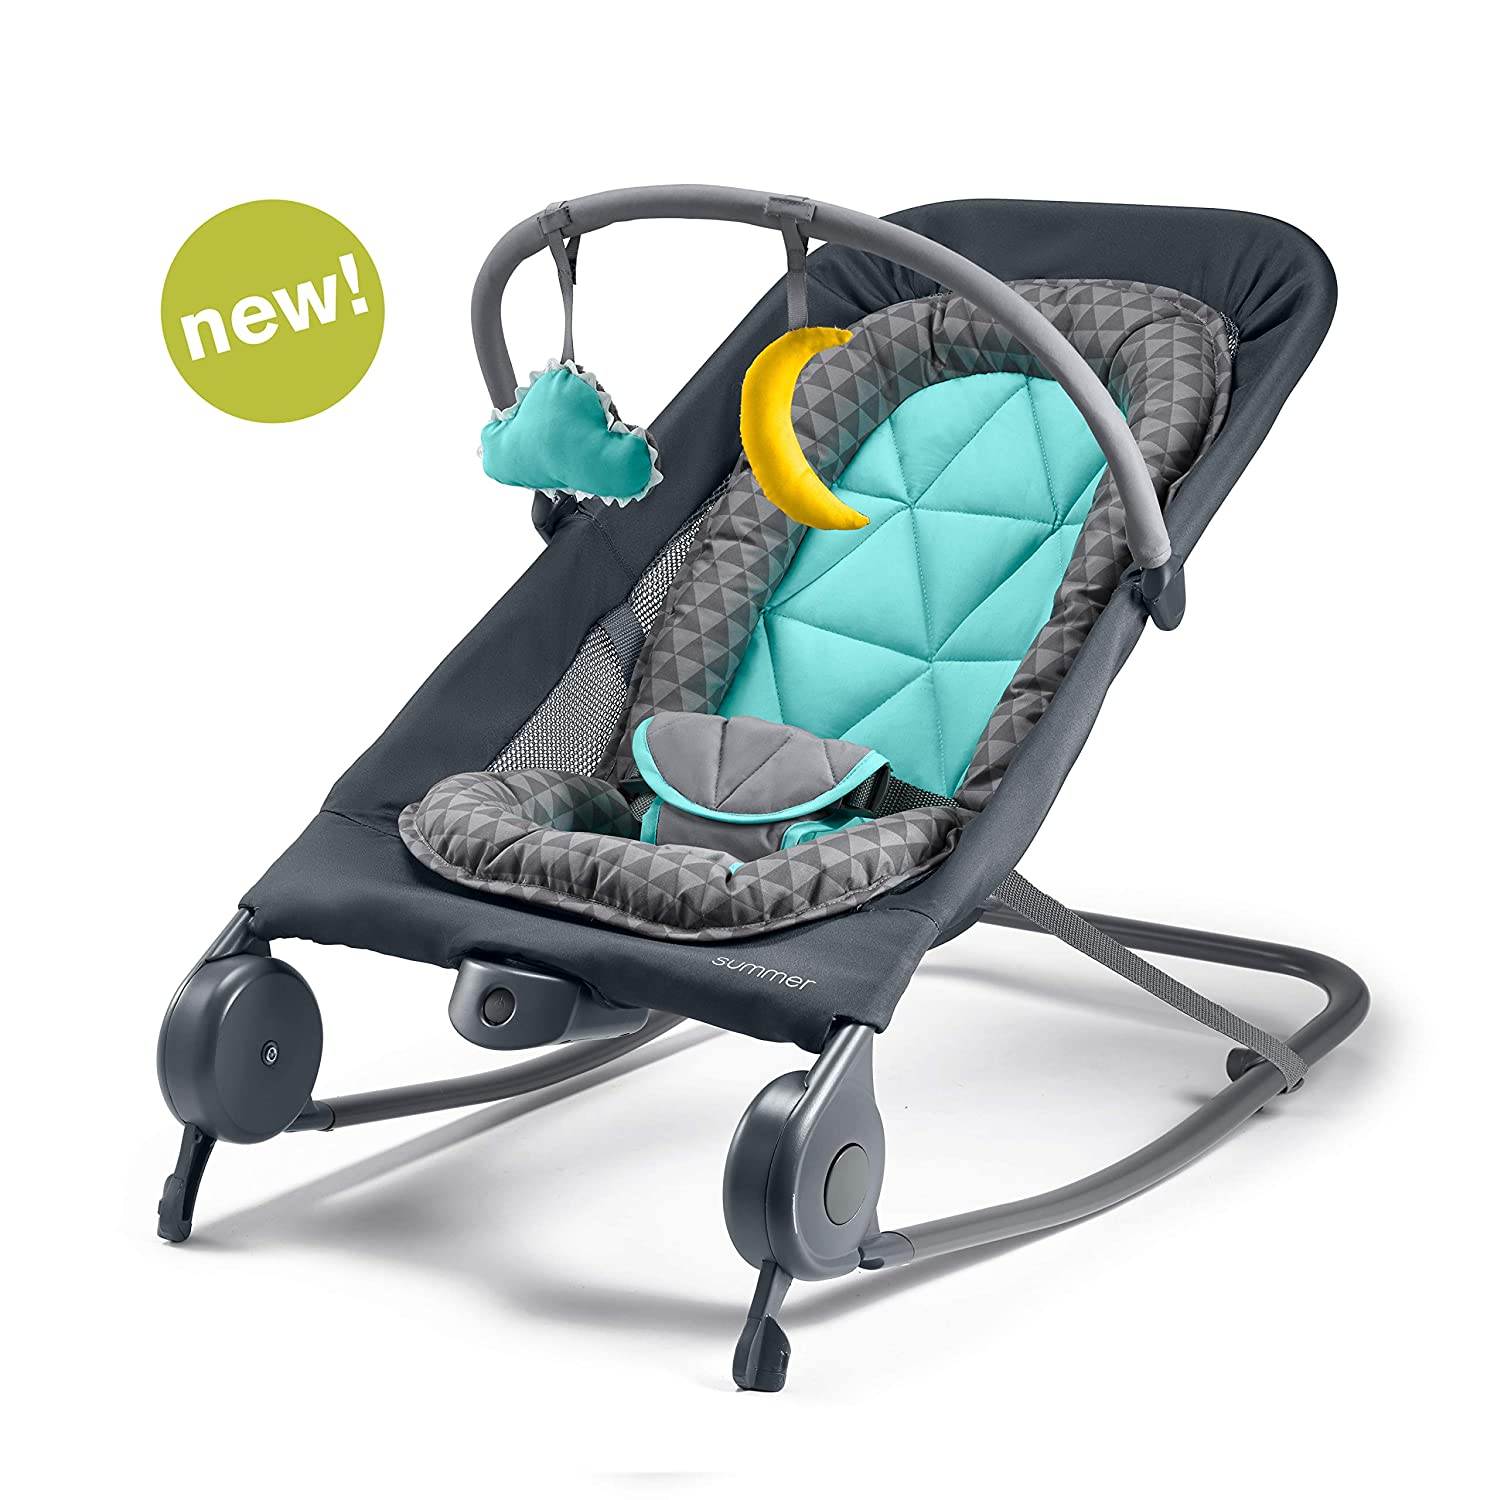 Summer 2-in-1 Bouncer Rocker Duo – Baby Bouncer Baby Rocker with Soothing Vibrations, Removable Toys Compact Fold for Storage or Travel – Easy to Clean, Machine Washable Fabrics, Gray Teal